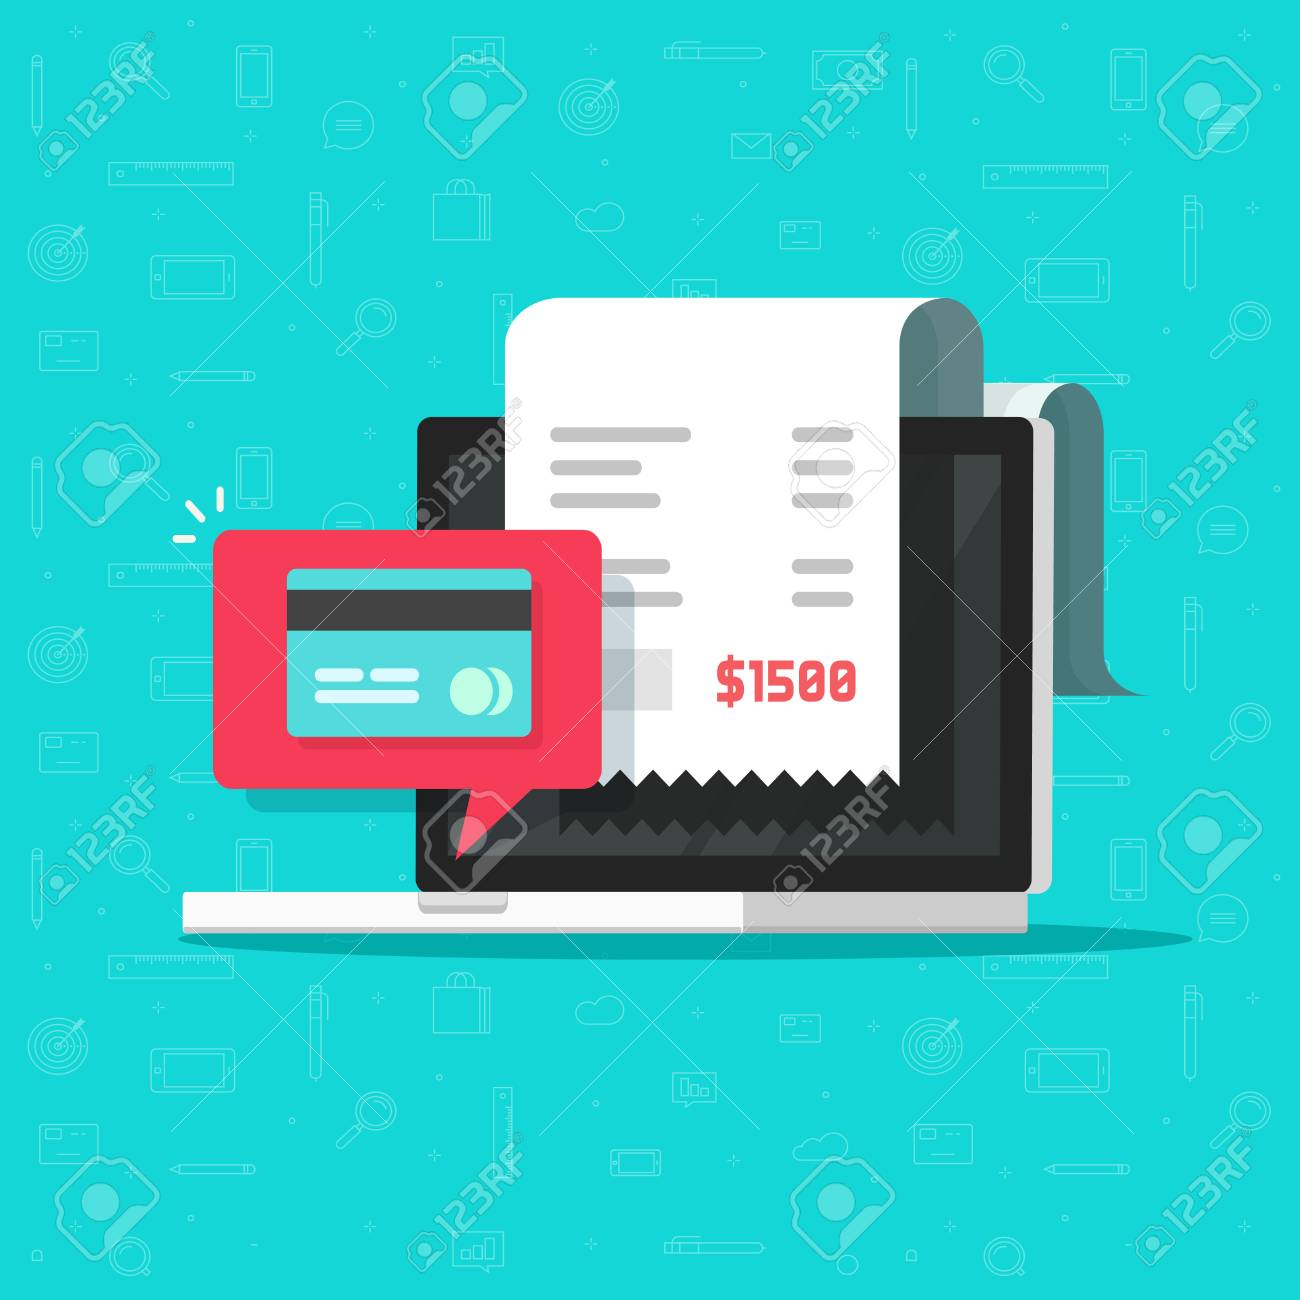 Online payment on computer vector illustration, flat cartoon big pay bill tax via credit card and laptop pc concept, financial accounting, electronic payment notification with digital receipt - 93465507